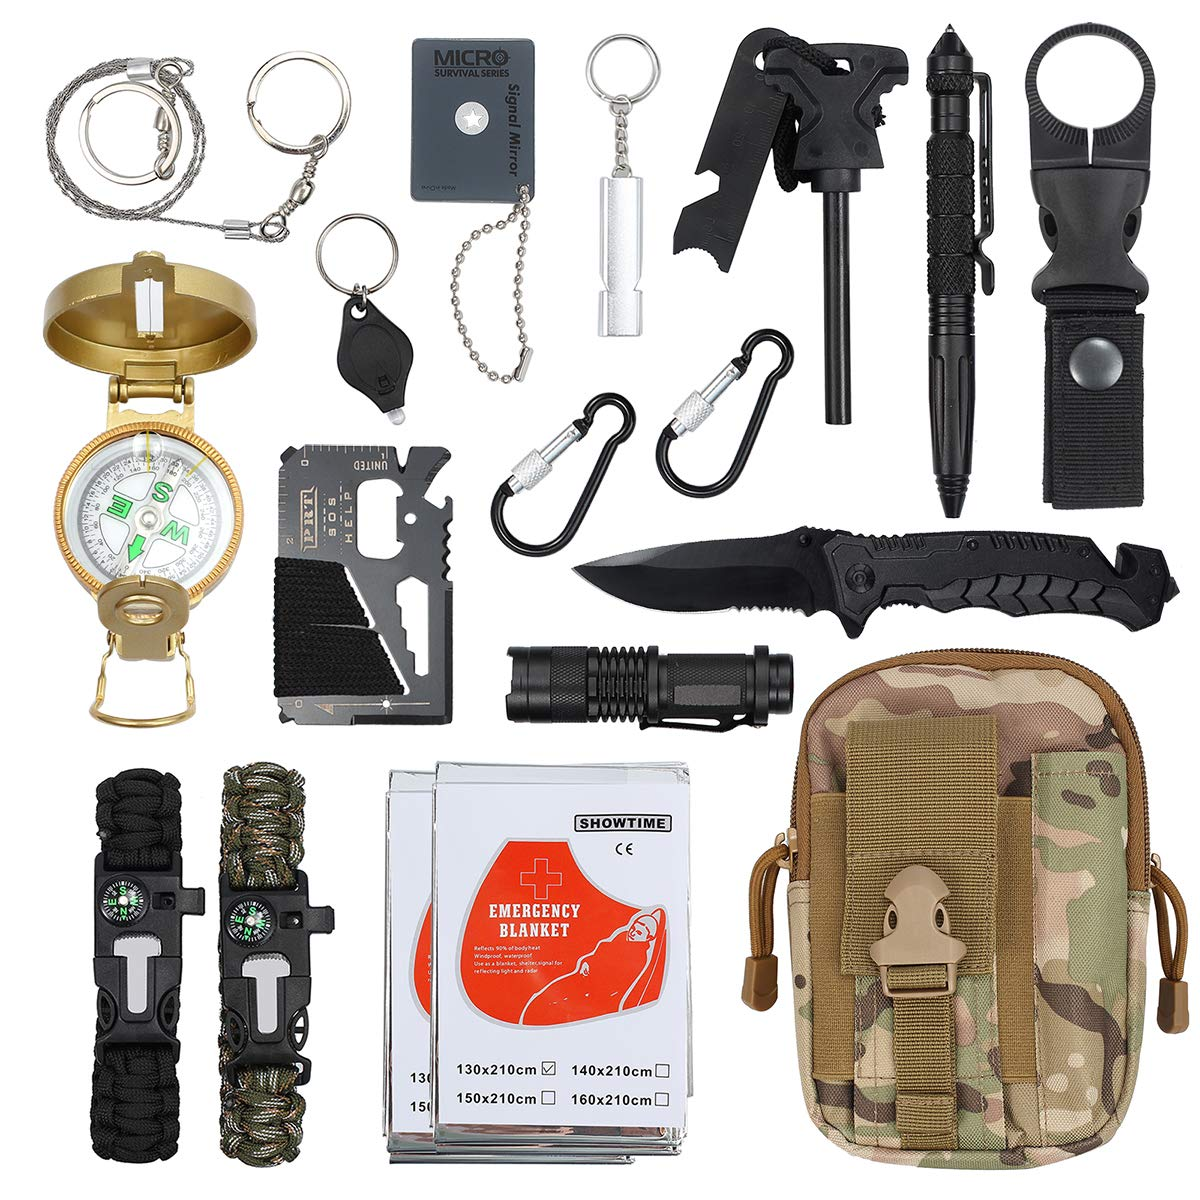 Emergency Survival Kit Justech Upgraded 18 in 1 Outdoor Survival Gear Kit Emergency SOS Survive Tool with Bracelet Temperature Compass Fire Starter Flashlight More for Wild Adventure Outdoor Sports